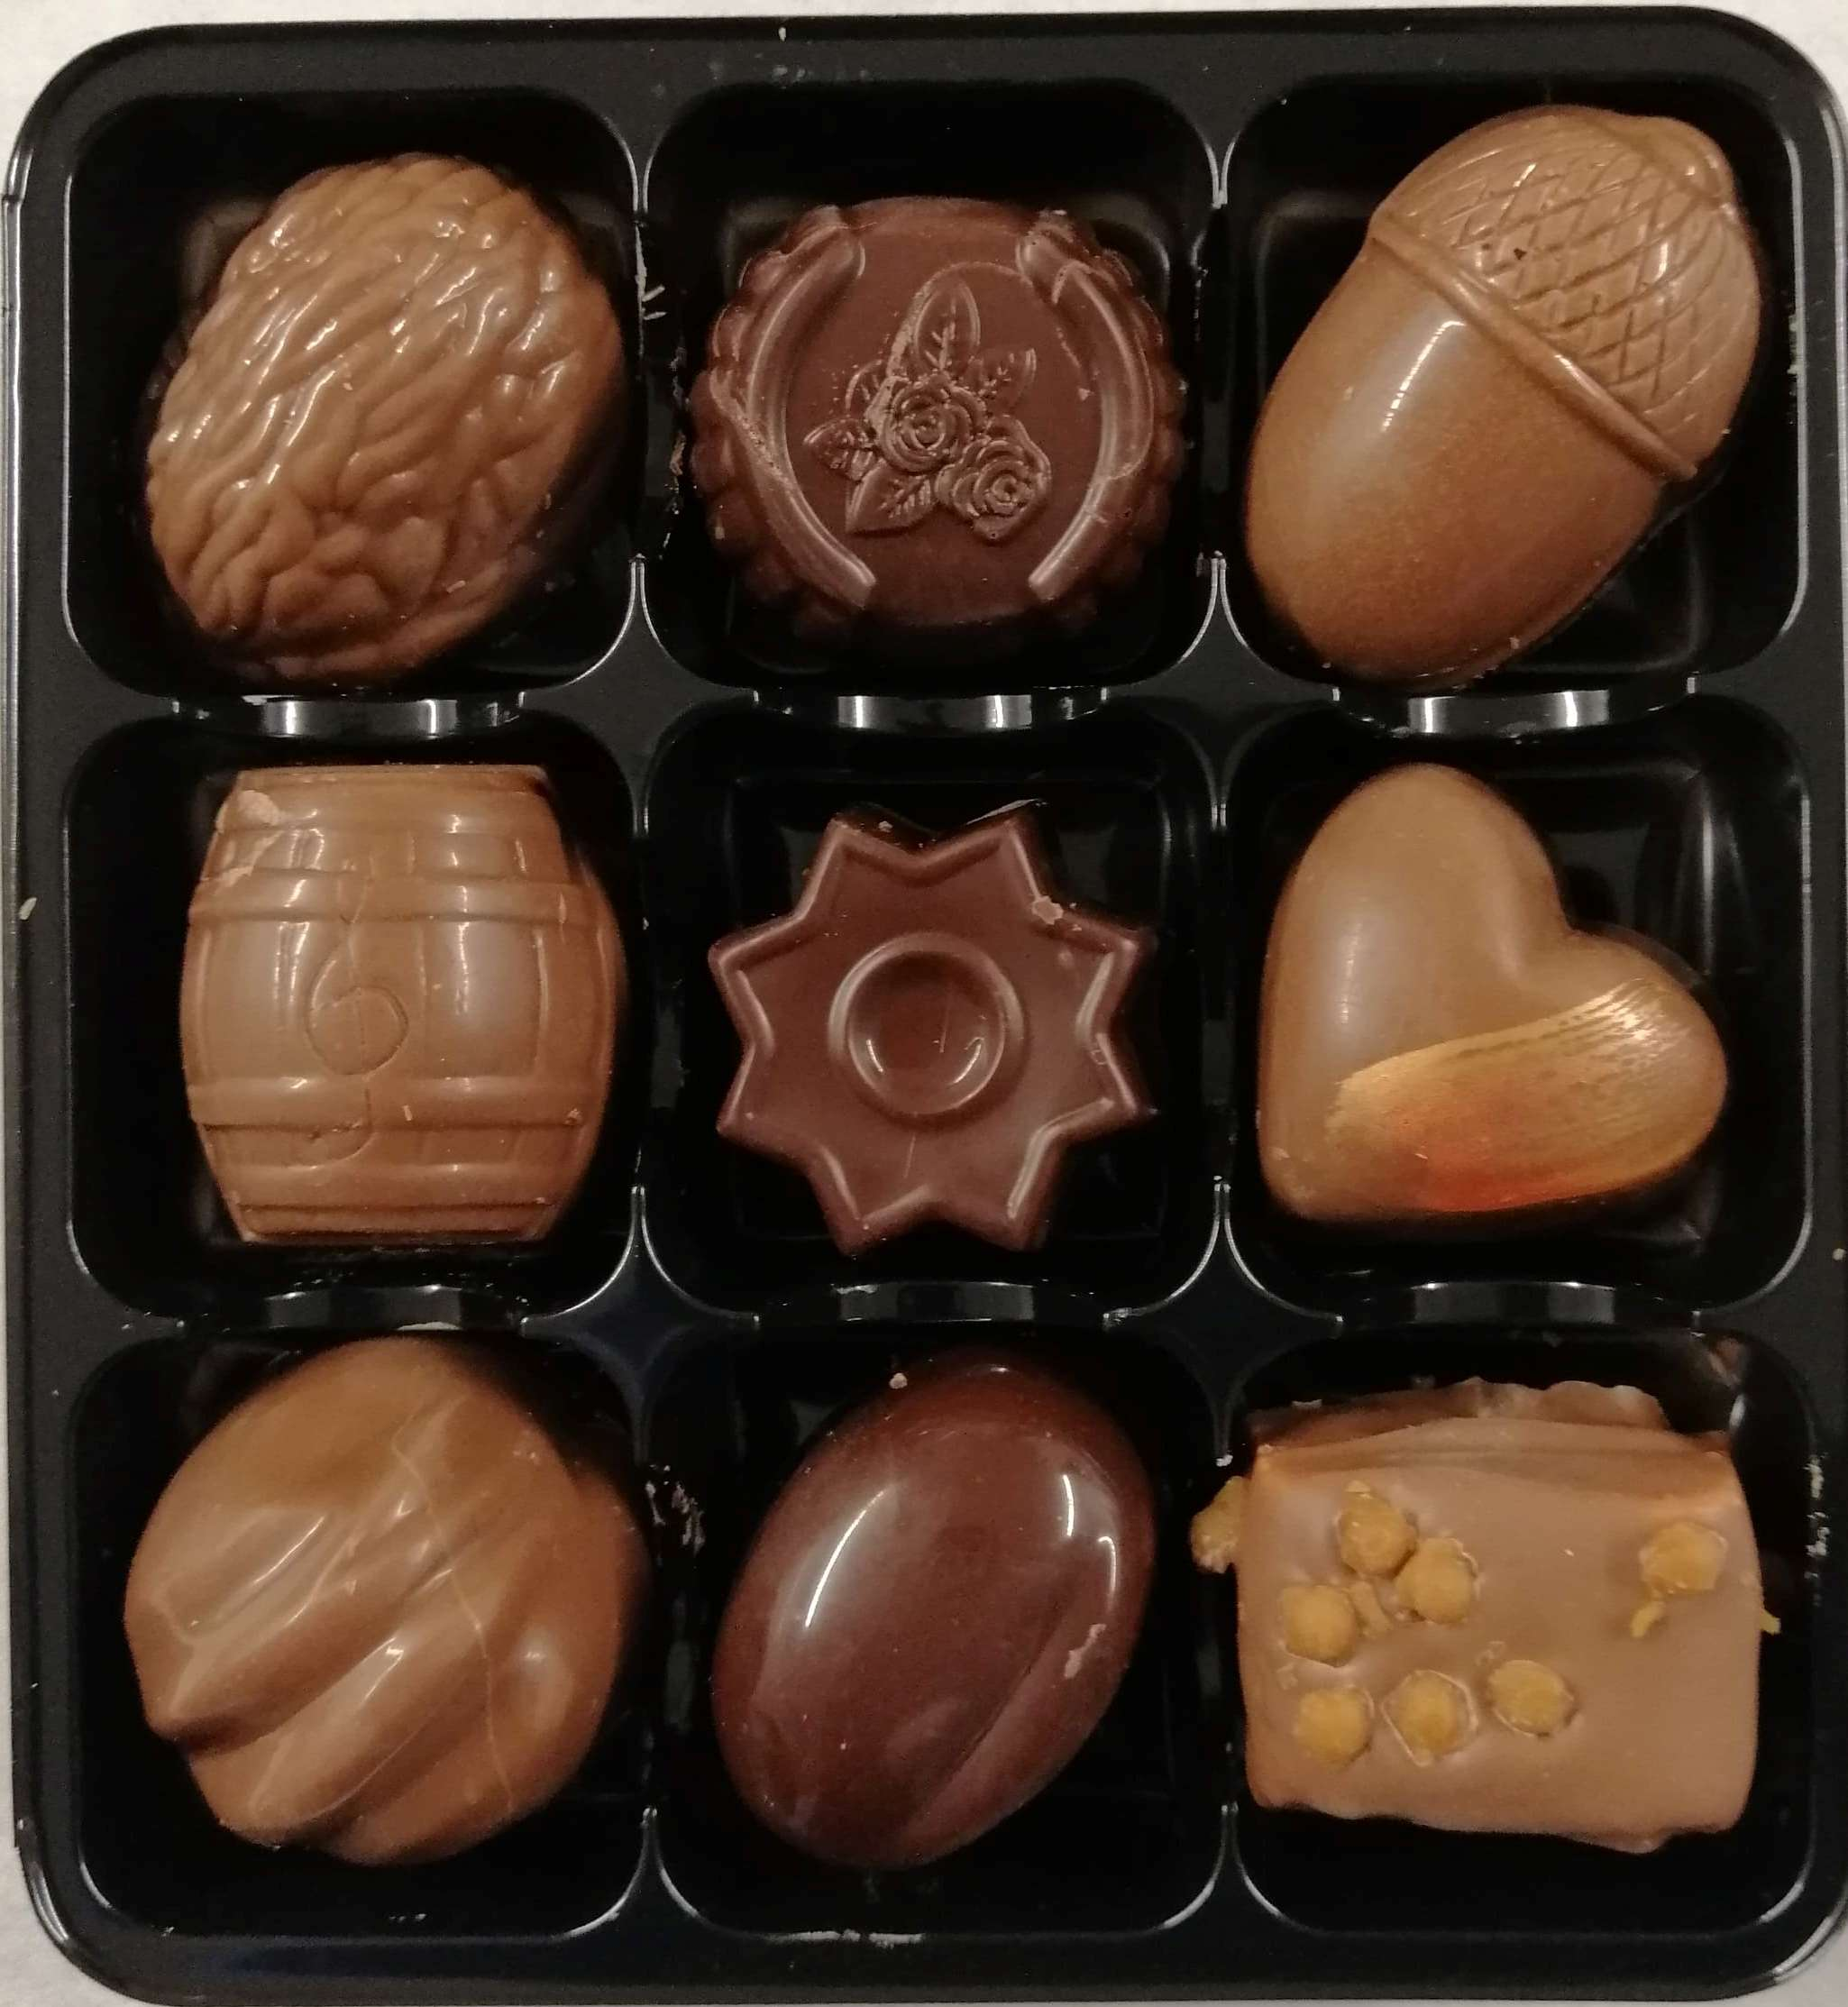 9 CHOCOLATE LUXURY DRAWER BOX